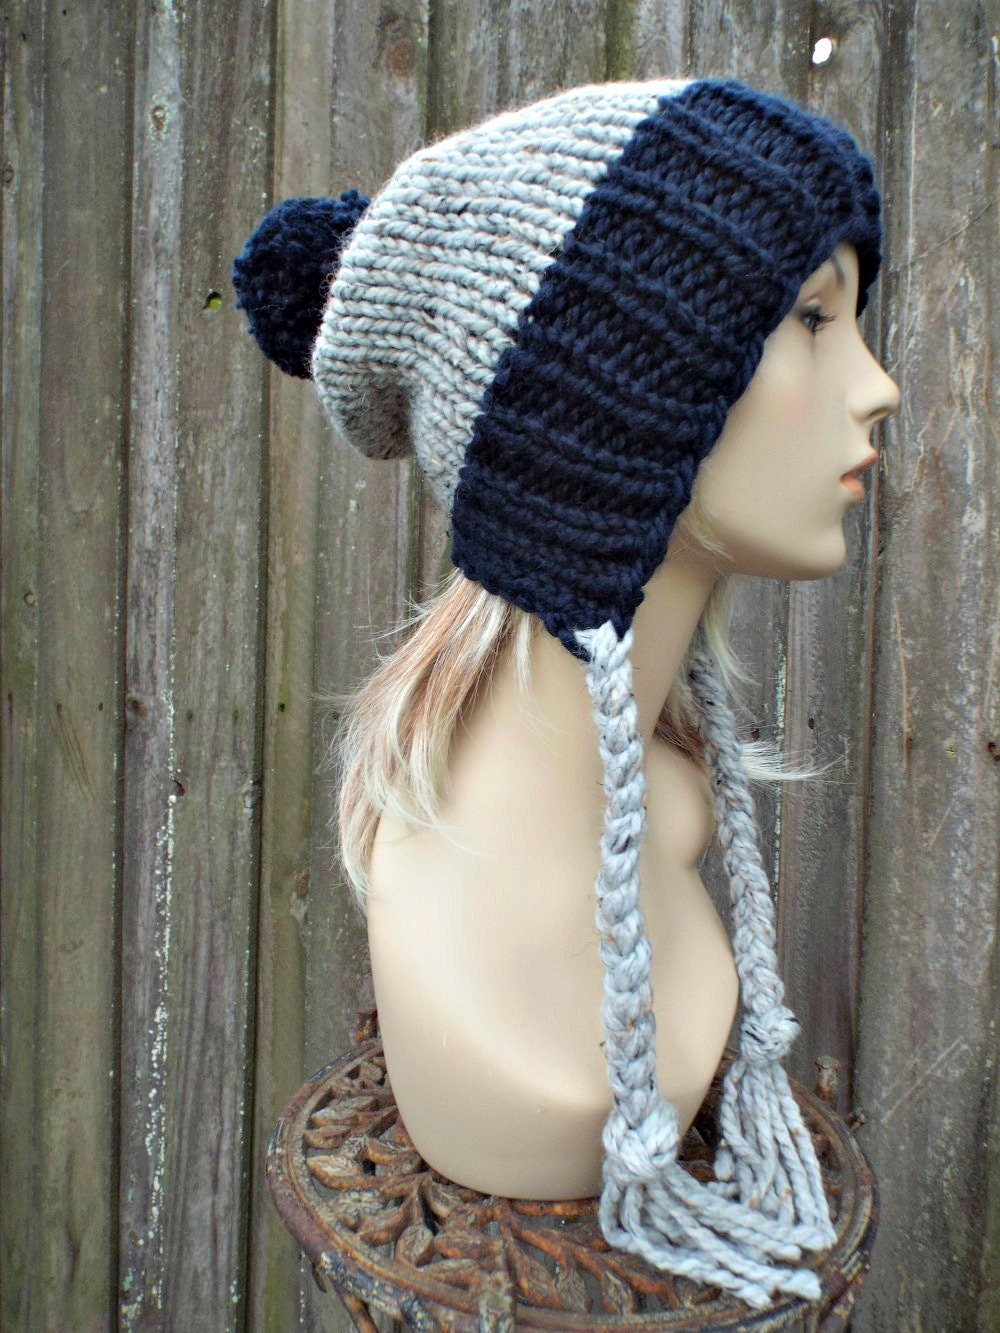 ecd59938e2a Chunky Knit Hat Womens Navy and Grey Pom Pom Hat - Slouchy Ear Flap Beanie  Braided Ties Warm Winter Hat - Charlotte - READY TO SHIP